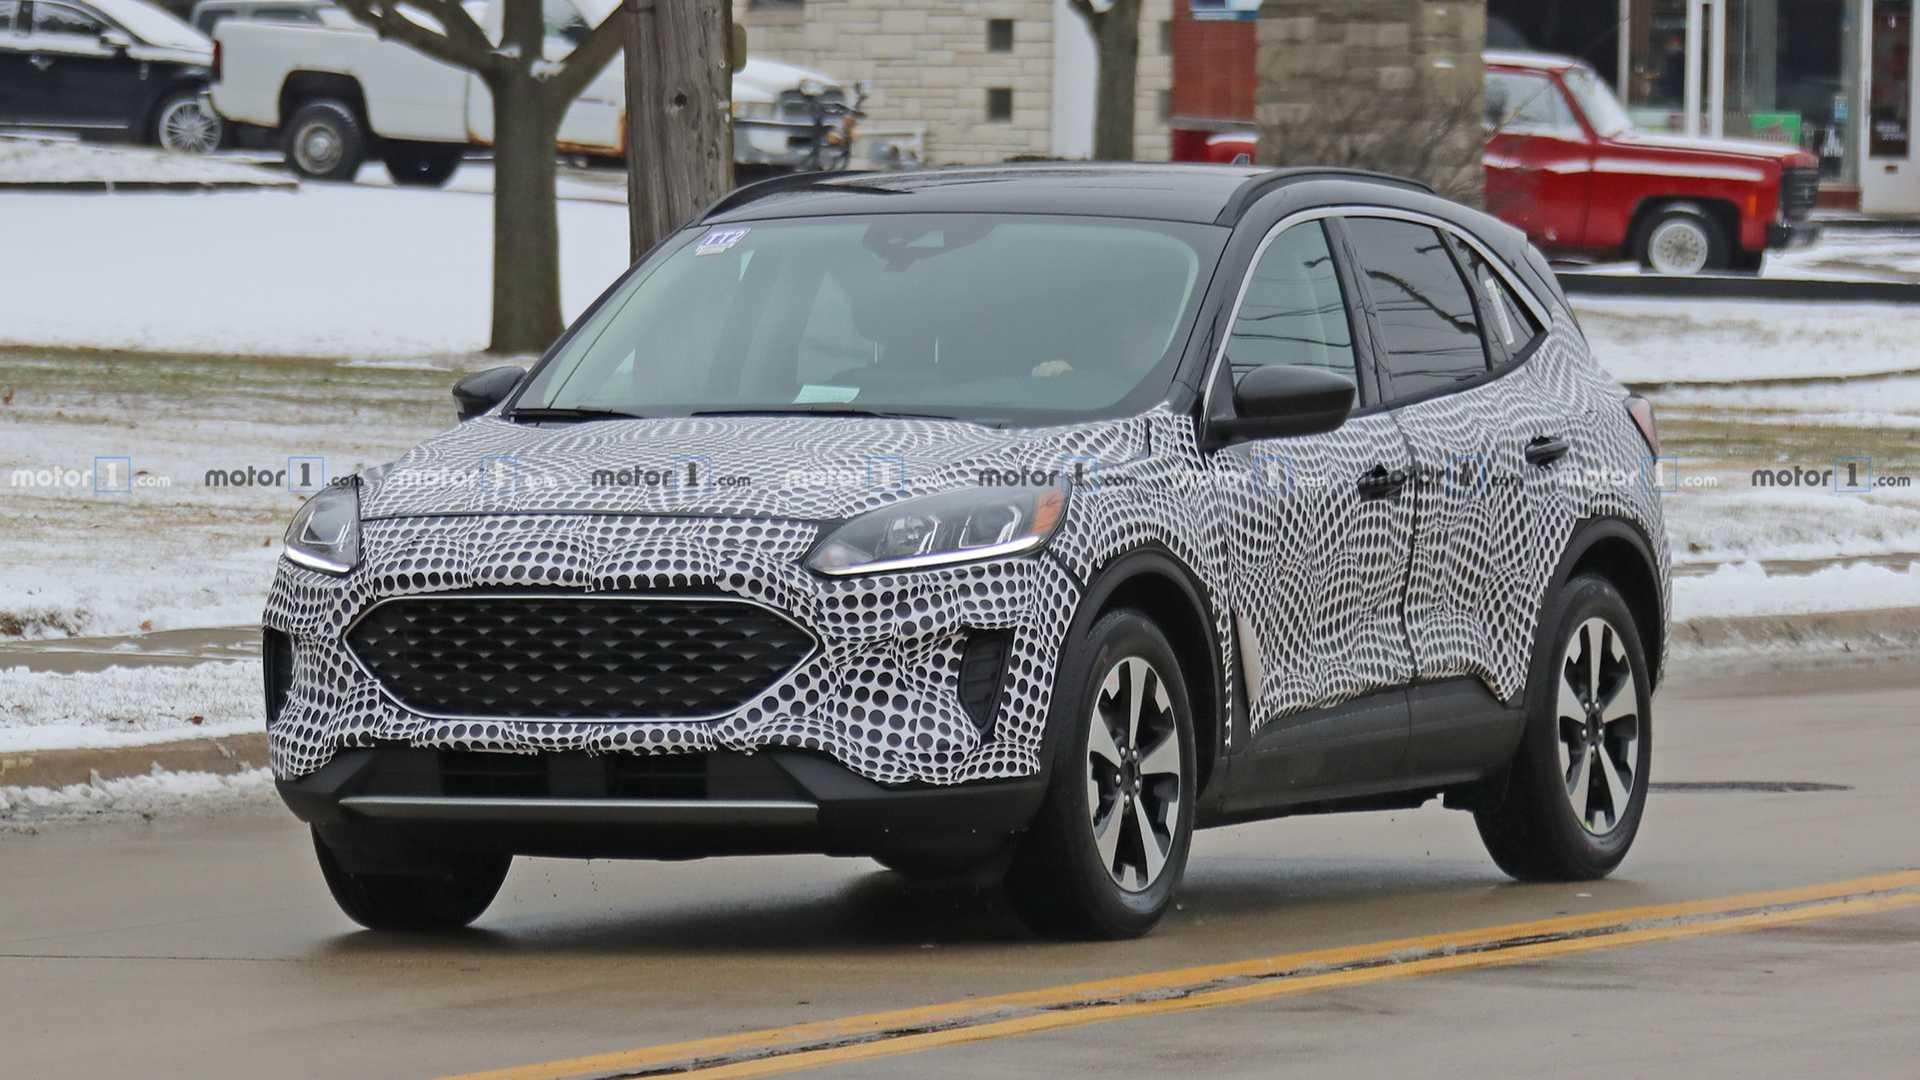 89 All New Ford Crossover 2020 Configurations